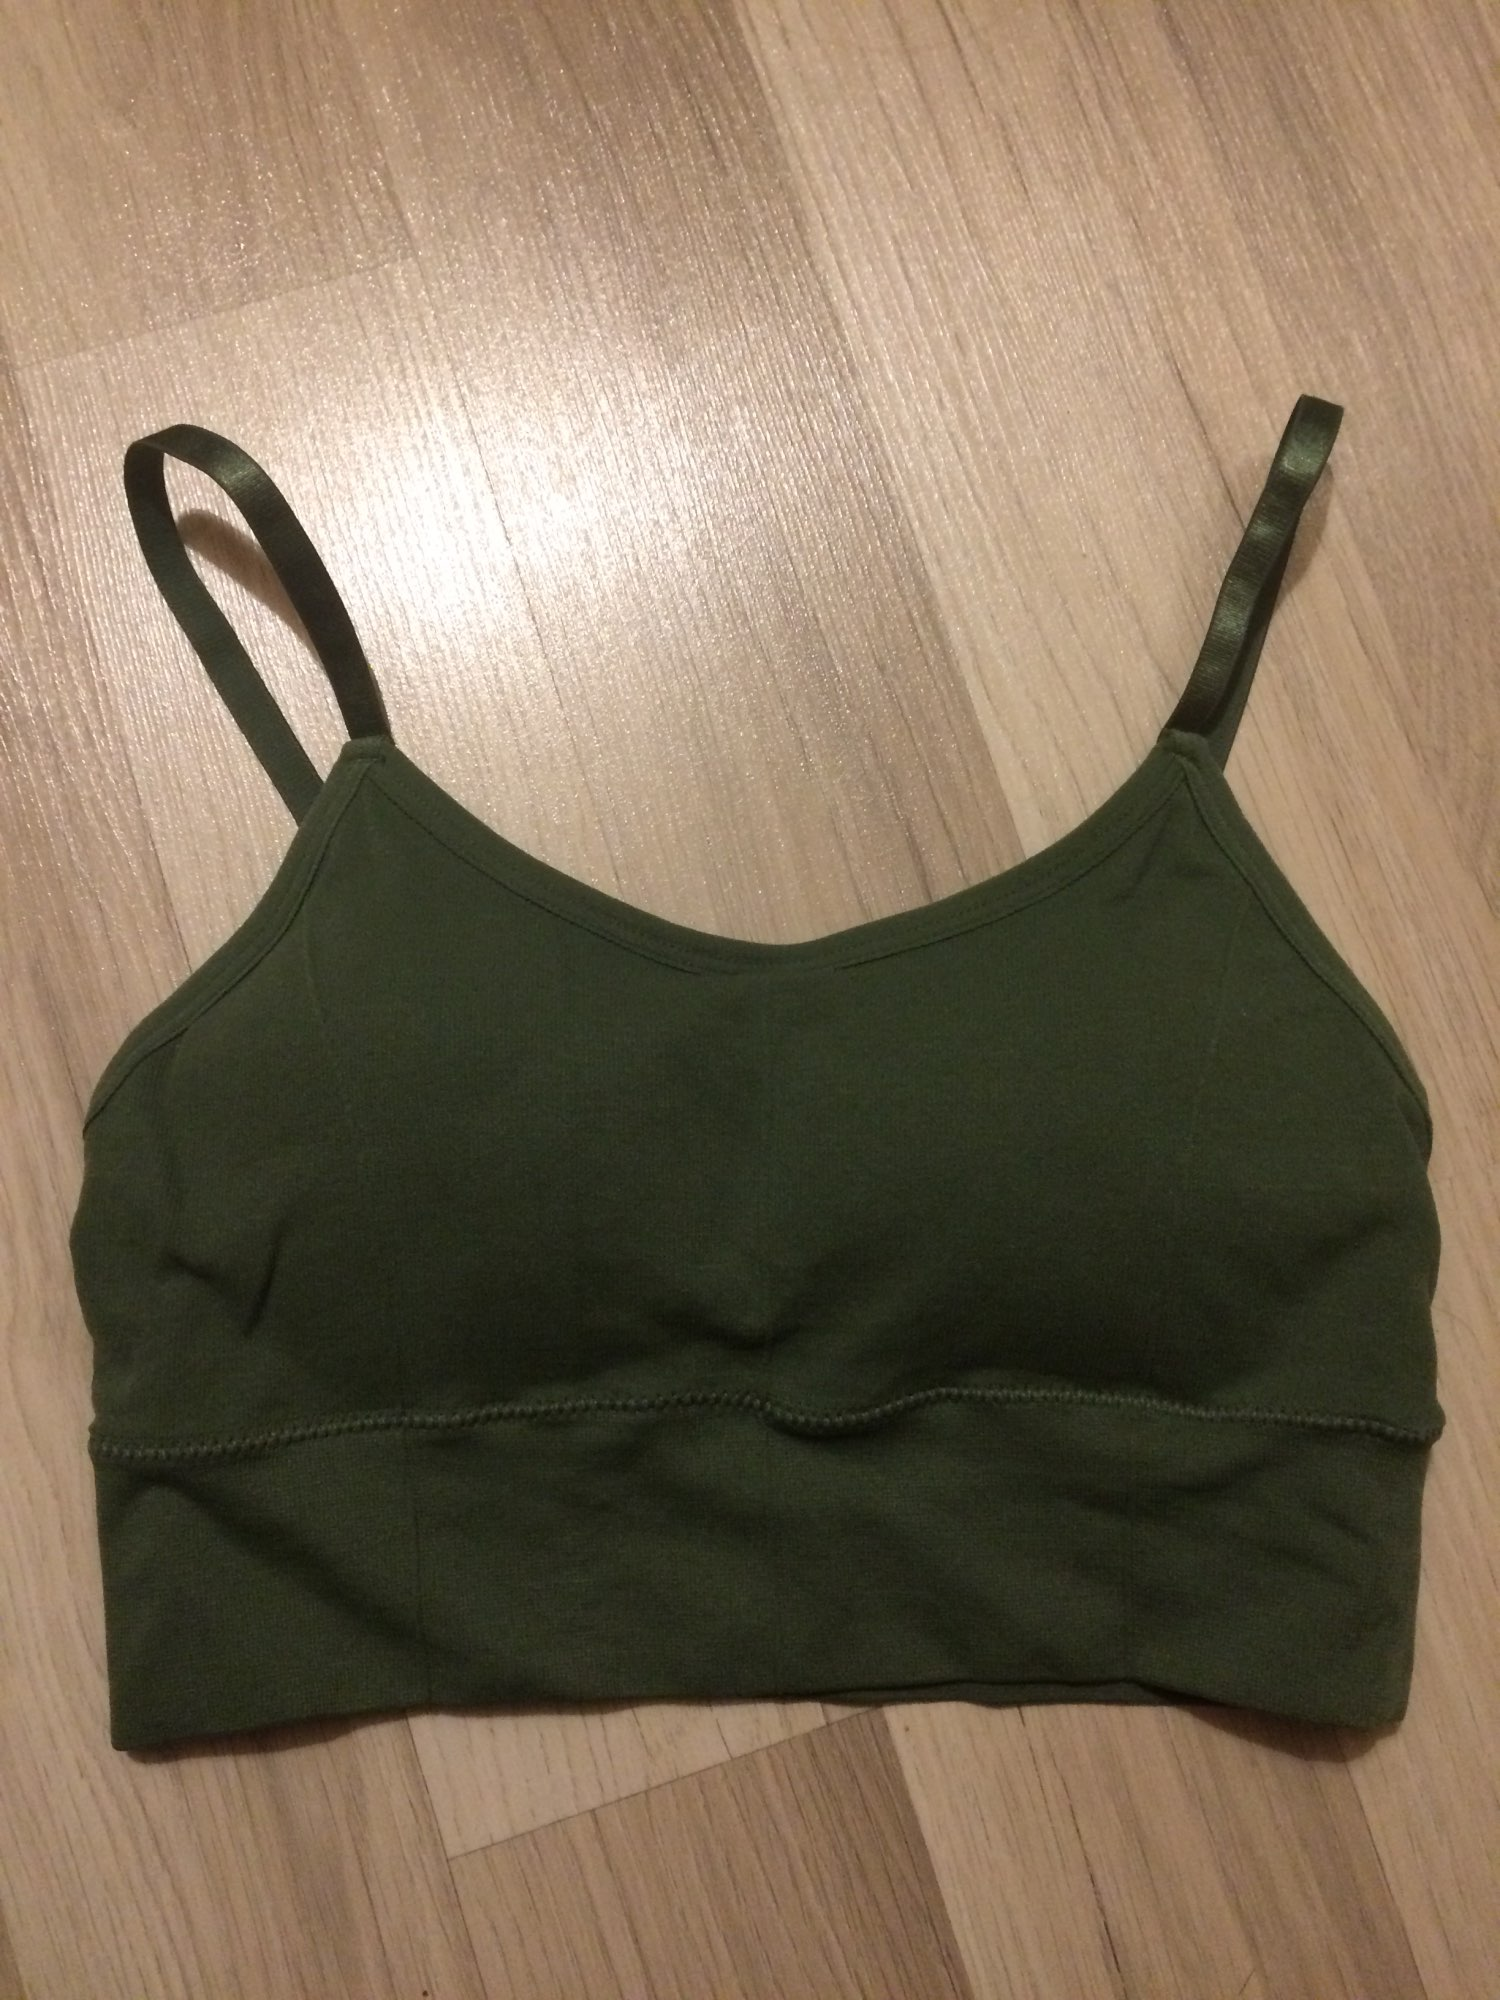 Breathable Sports Seamless Bra Anti-Sagging photo review